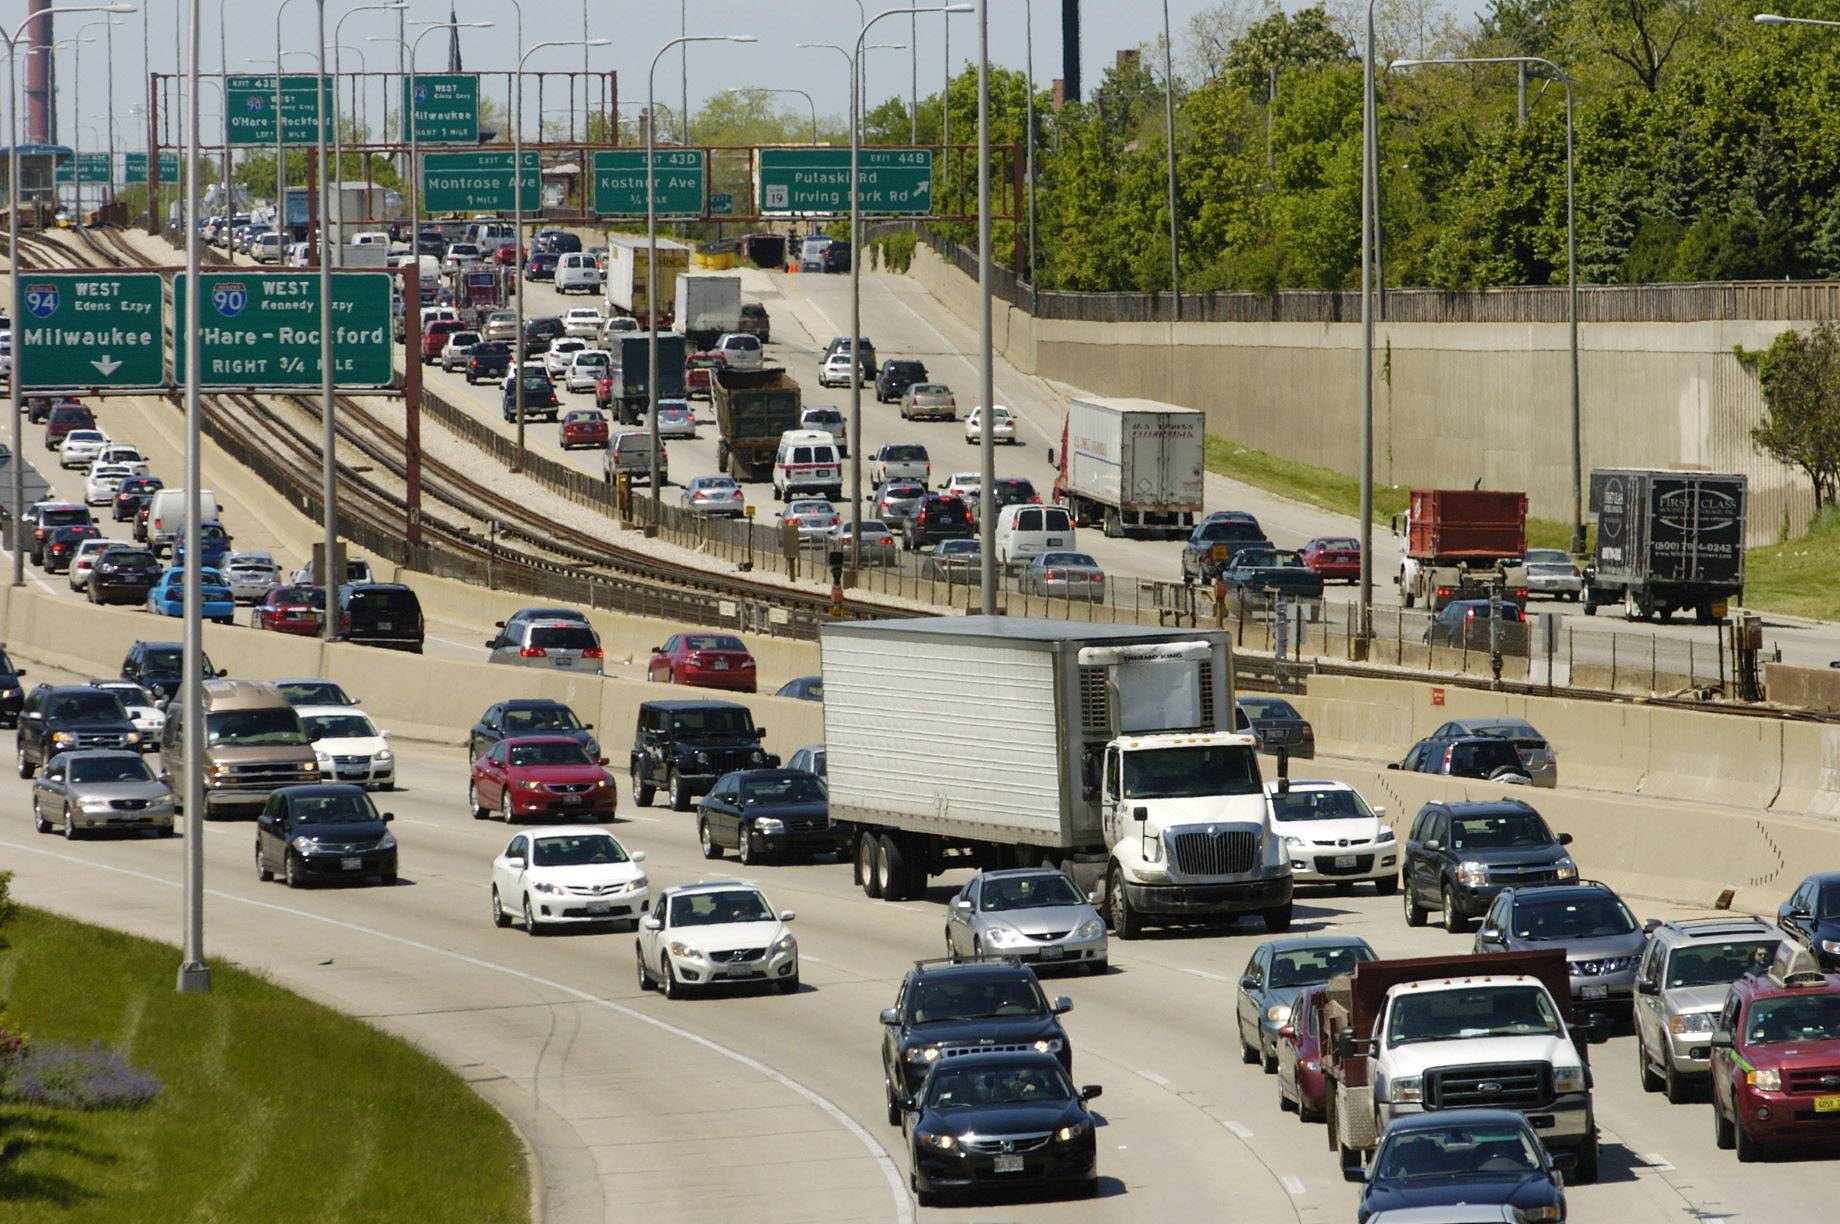 Bob Chwedyk/bchwedyk@dailyherald.com, May 2012 Avoid the Kennedy Expressway near downtown for the next three weekends, officials warn.